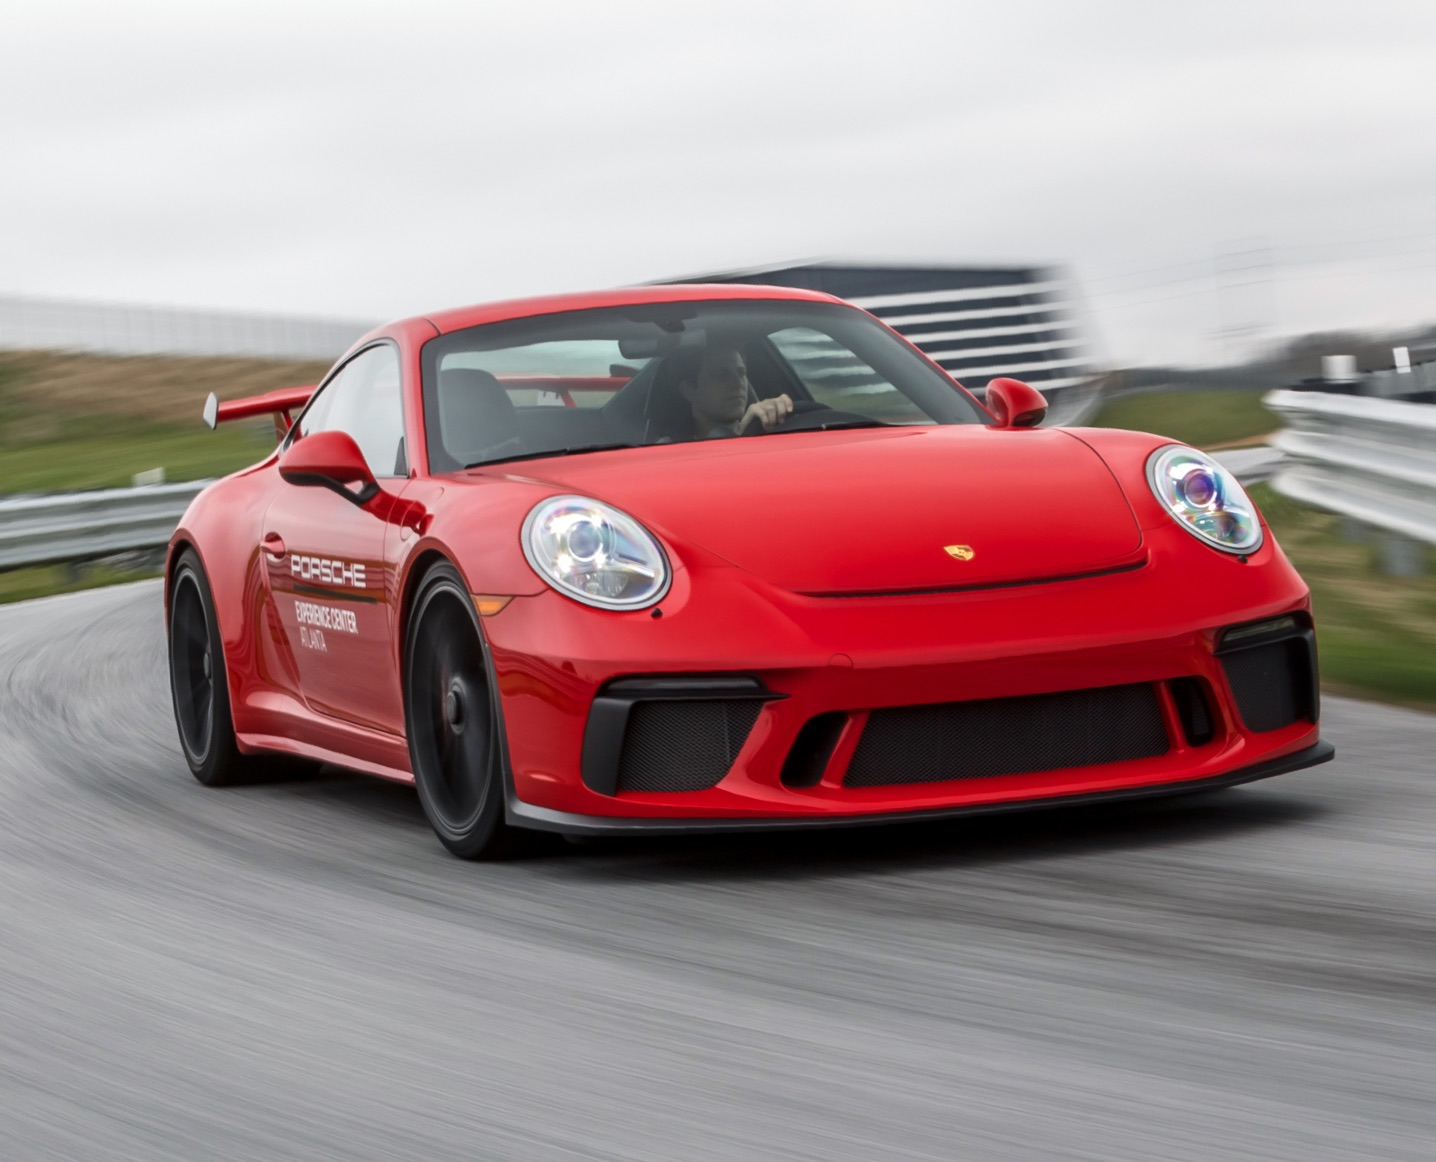 Red 911 Turbo